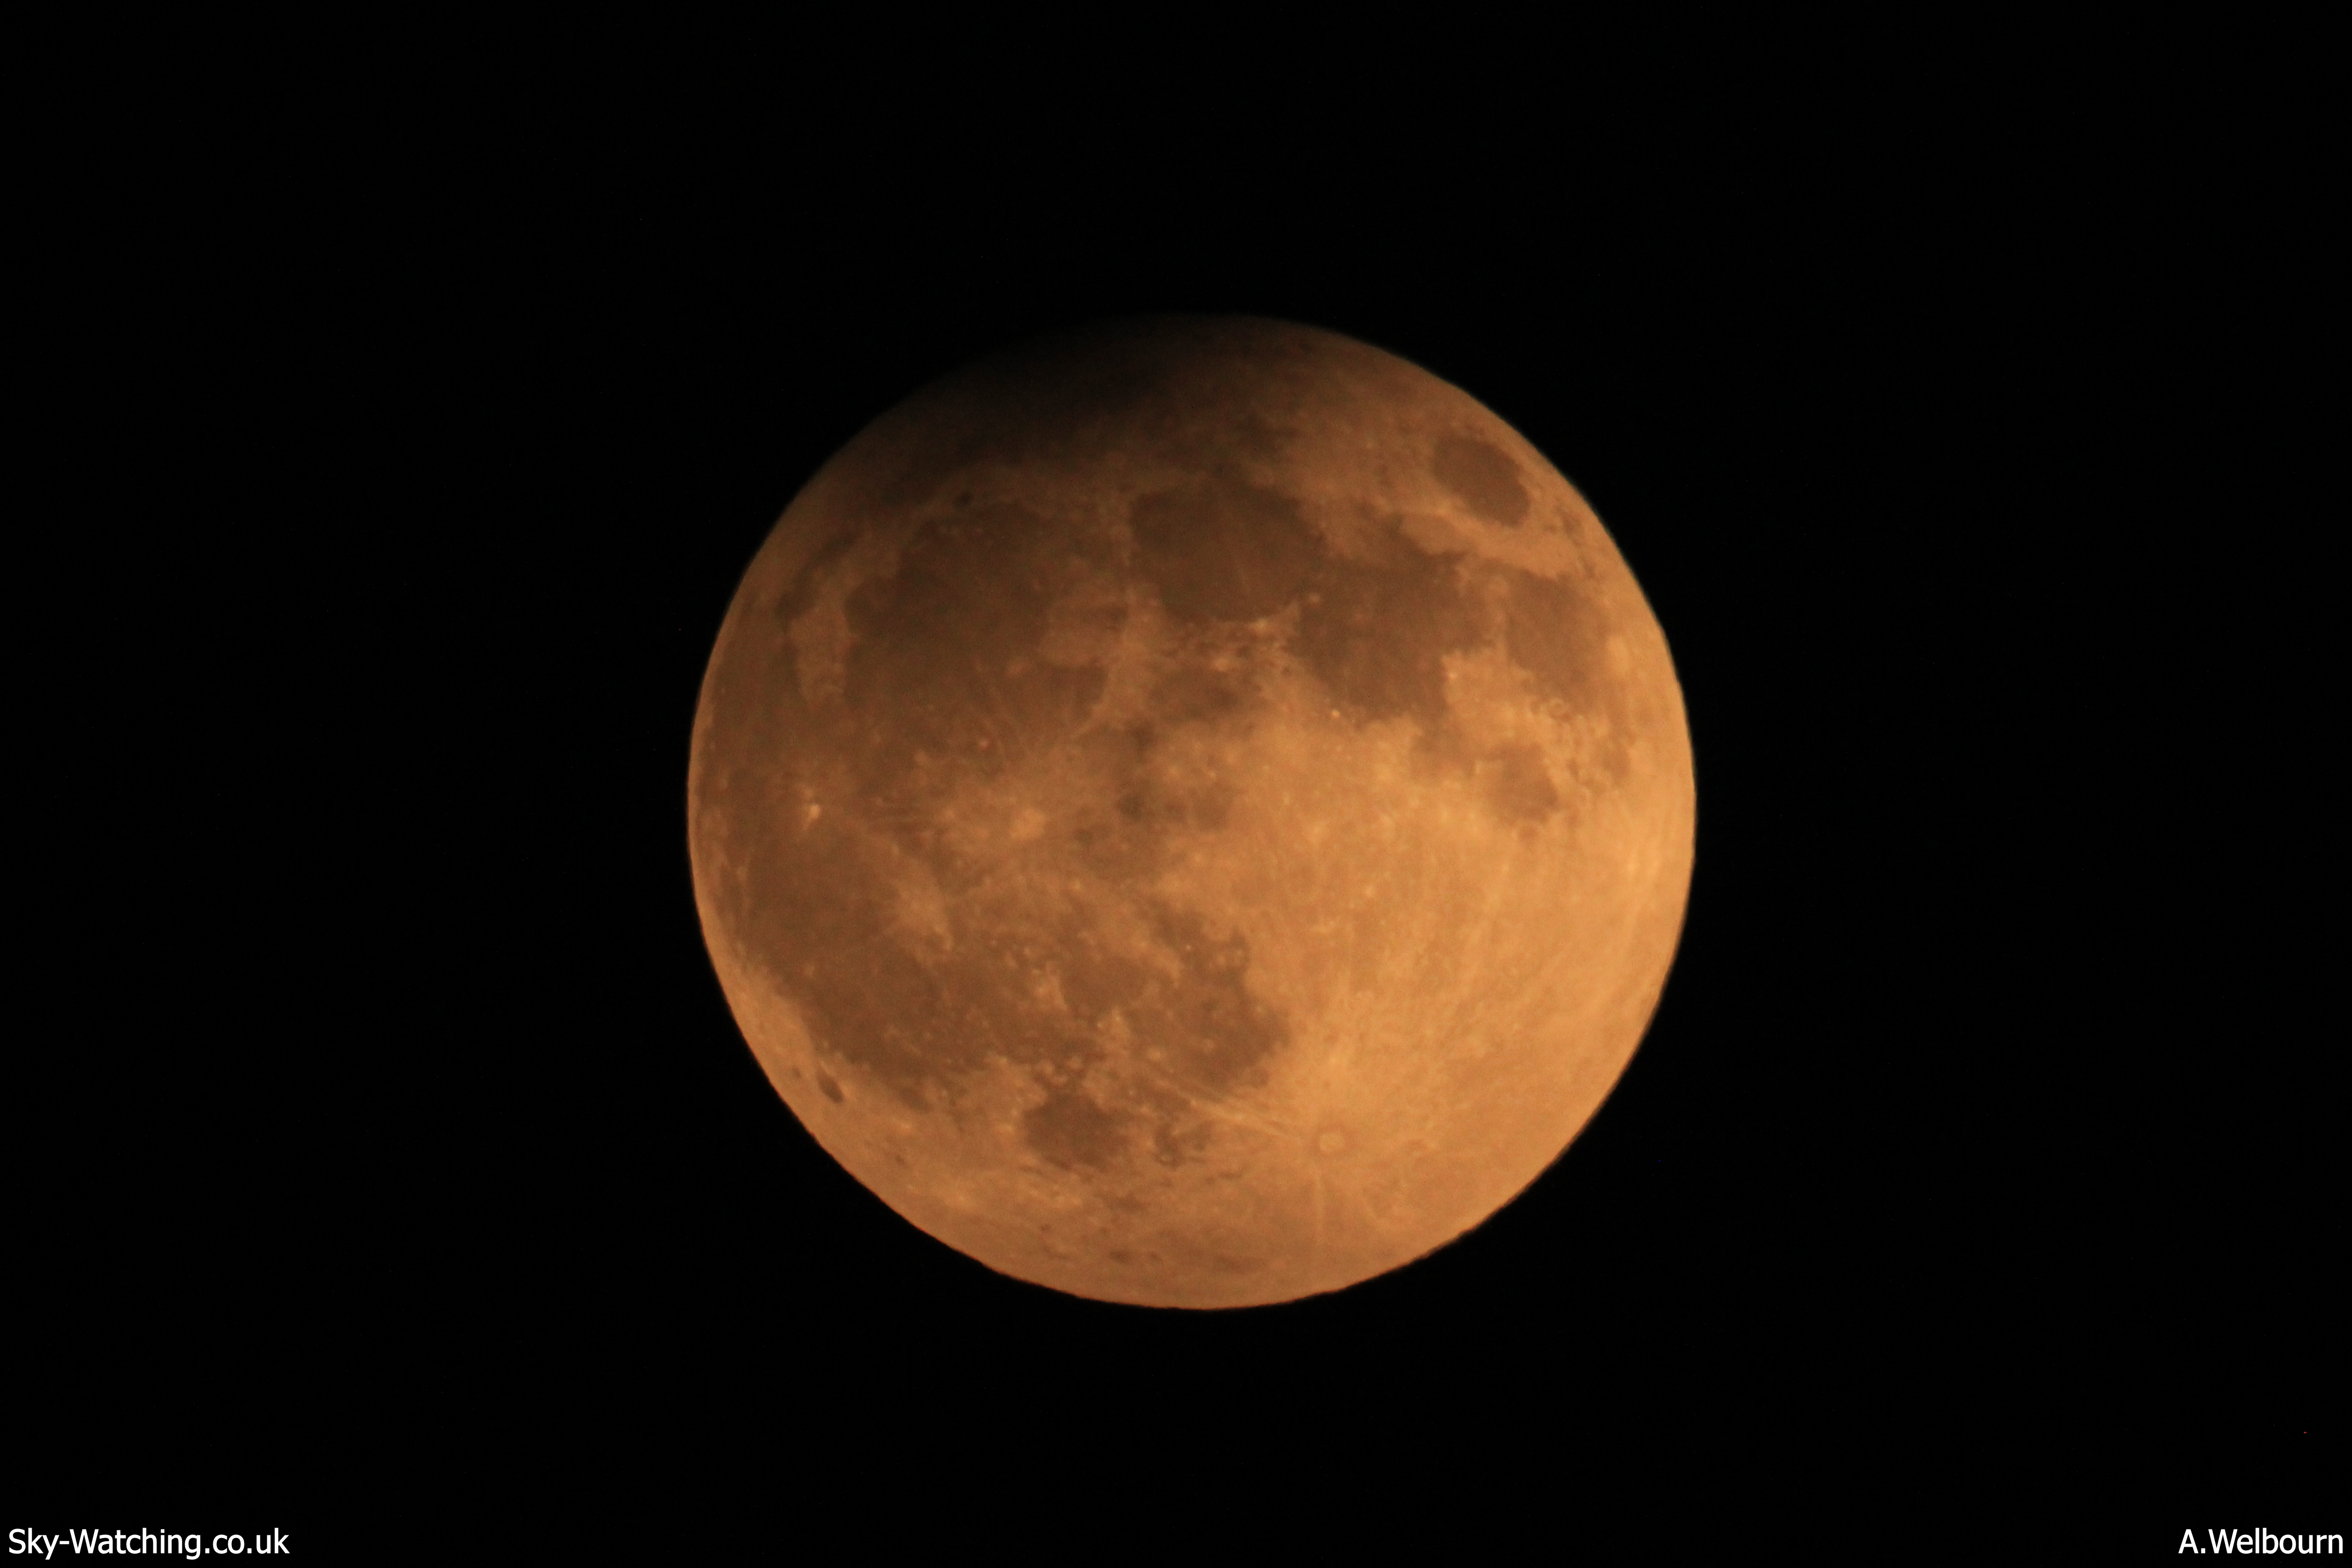 Eclipse of the moon takes place this Friday